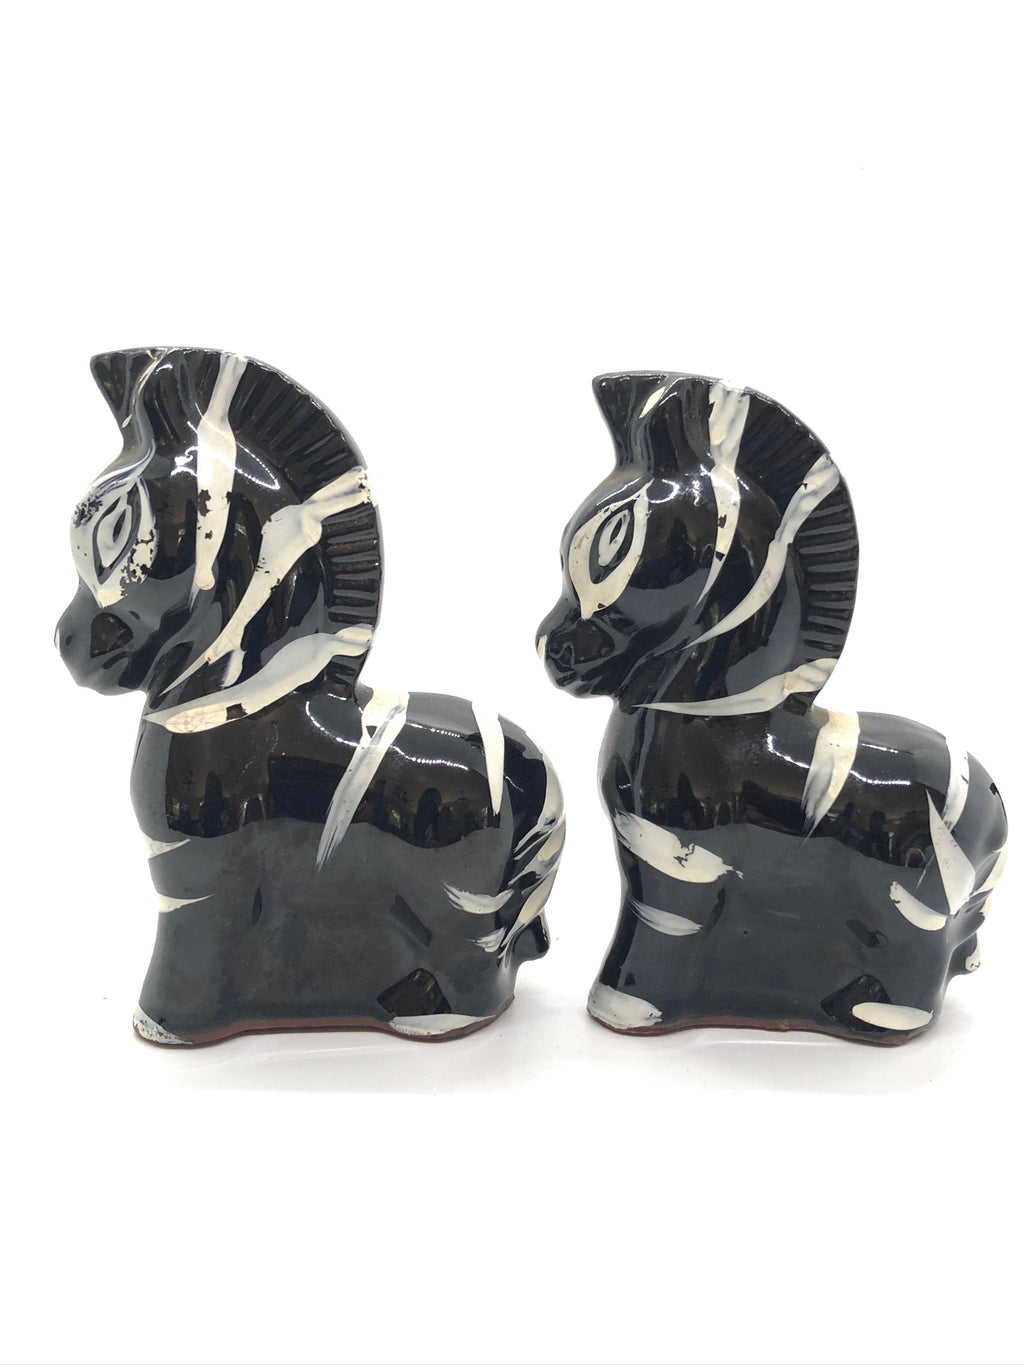 Black & White Zebra Vintage Salt & Pepper Shakers